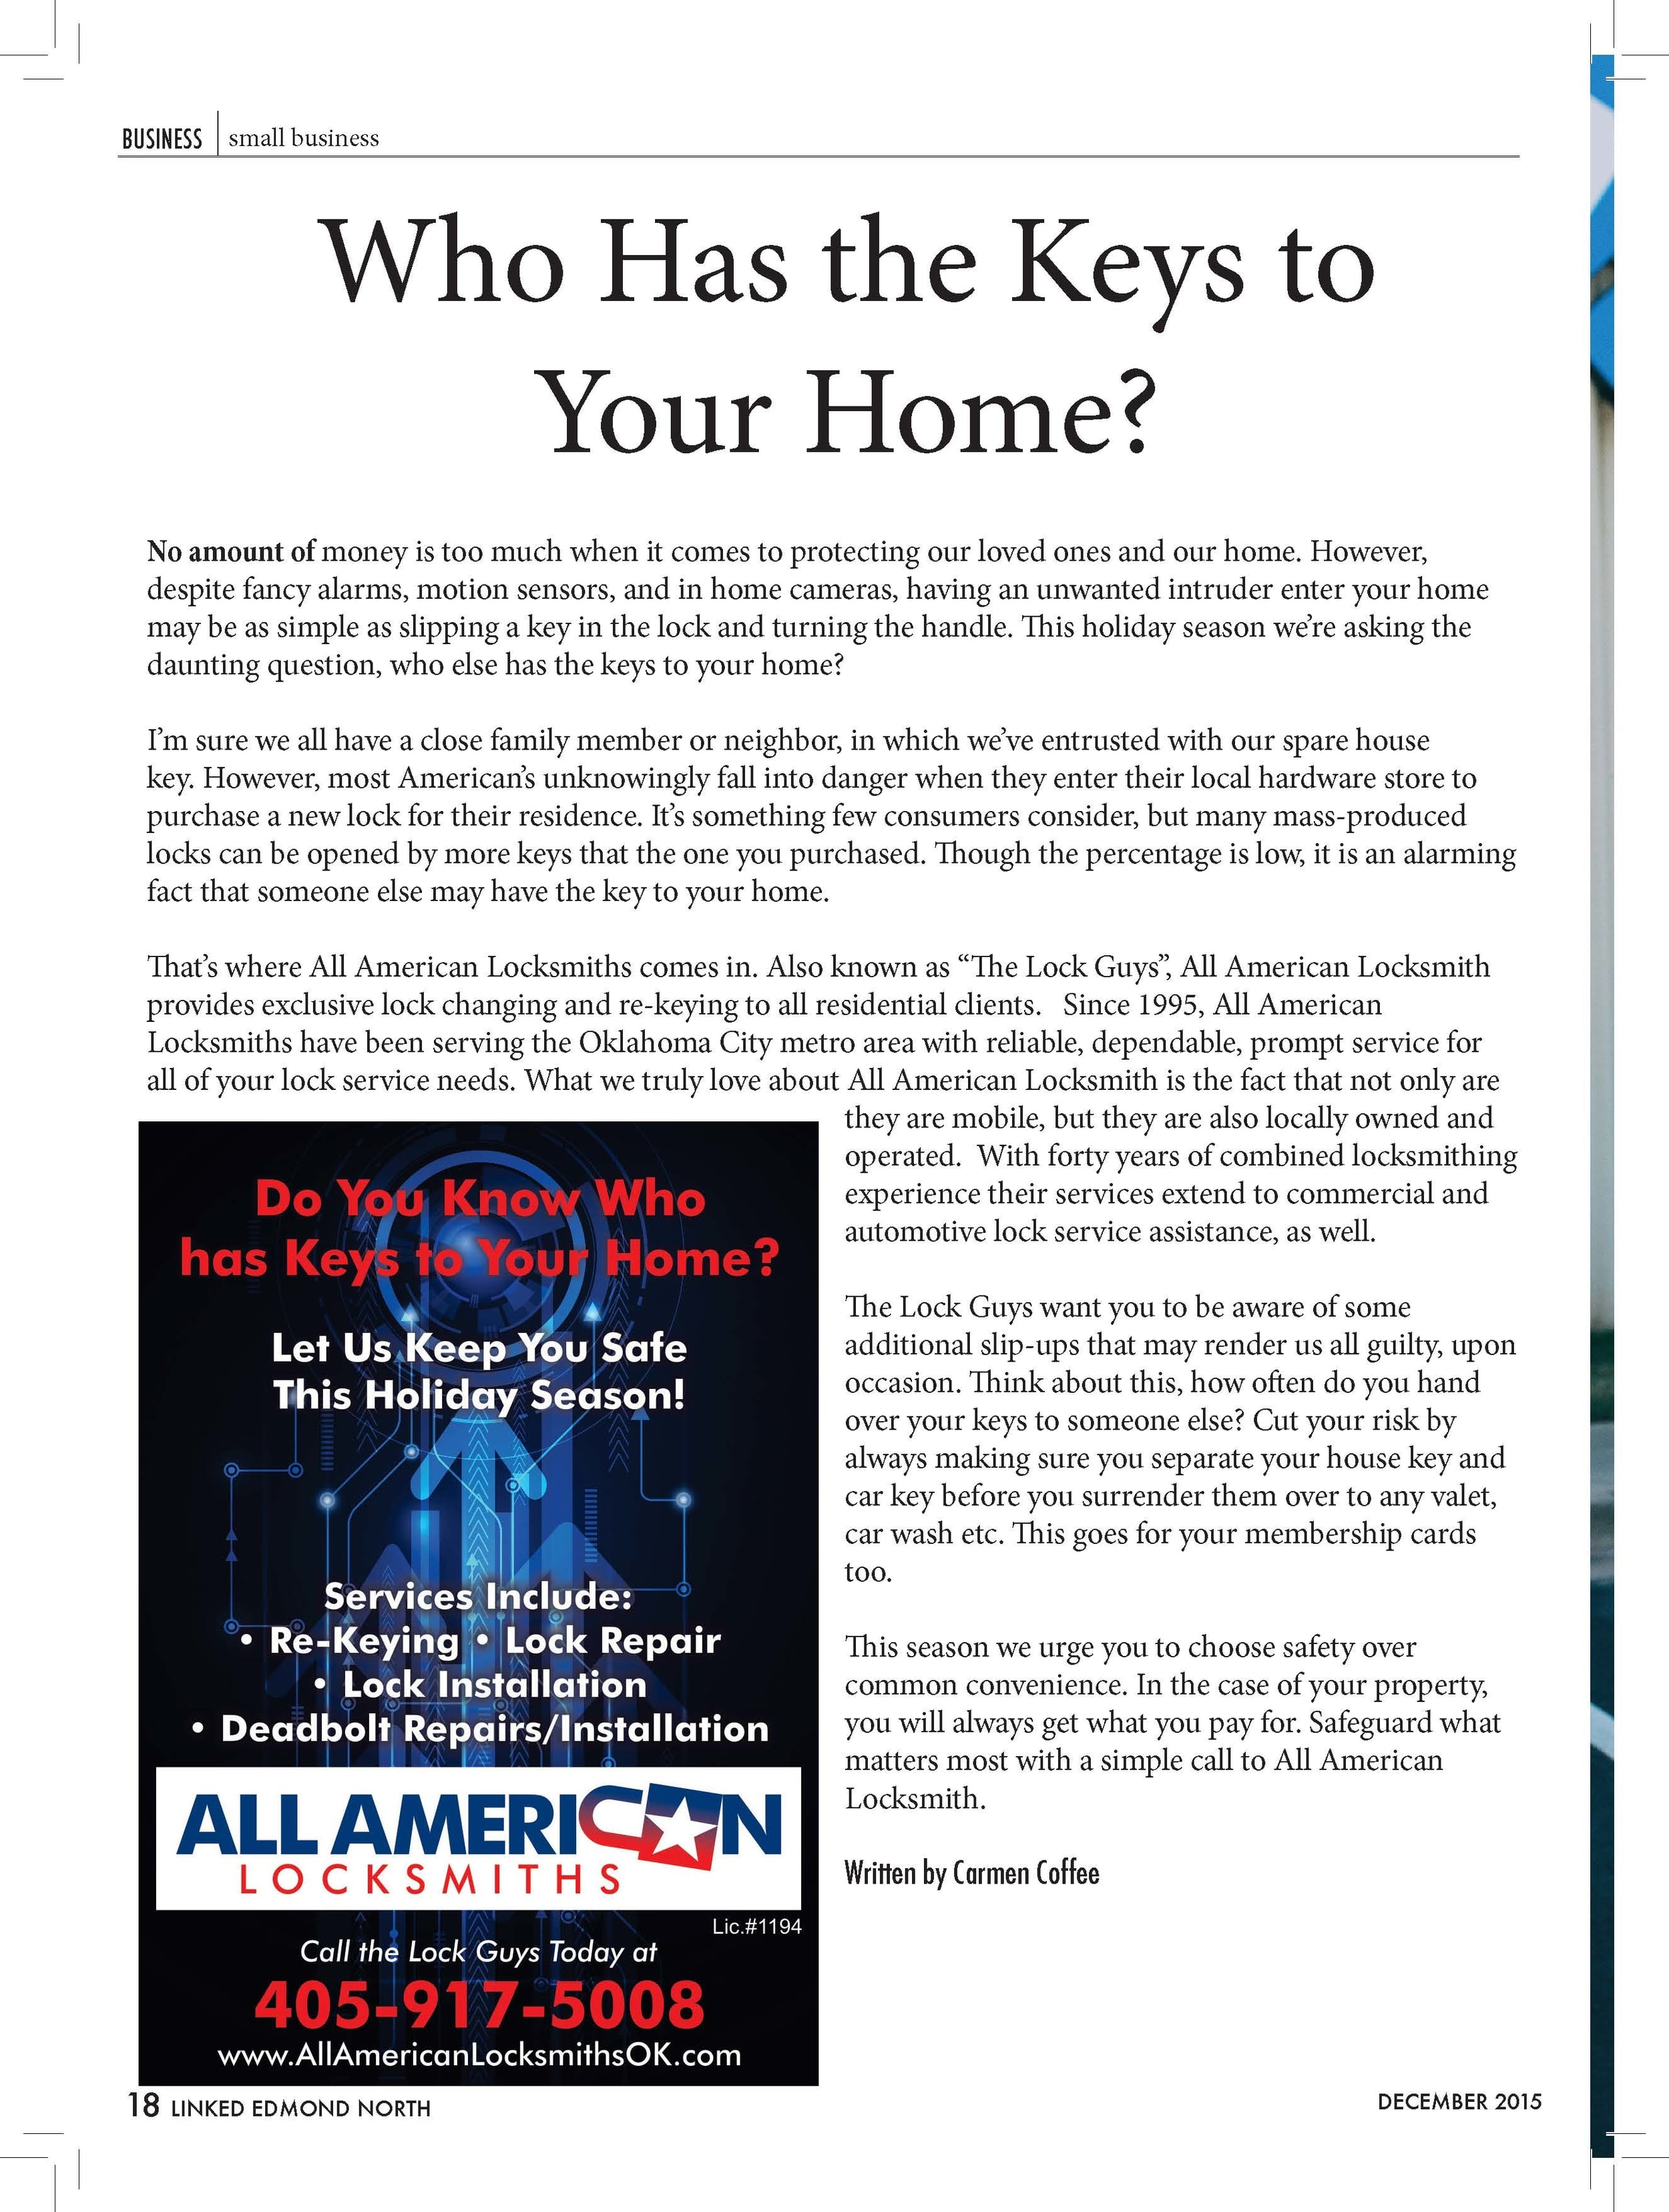 """Who Has the Keys to  Your Home?  No amount of money is too much when it comes to protecting our loved ones and our home. However,  despite fancy alarms, motion sensors, and in home cameras, having an unwanted intruder enter your home  may be as simple as slipping a key in the lock and turning the handle. This holiday season we're asking the  daunting question, who else has the keys to your home?  I'm sure we all have a close family member or neighbor, in which we've entrusted with our spare house  key. However, most American's unknowingly fall into danger when they enter their local hardware store to  purchase a new lock for their residence. It's something few consumers consider, but many mass-produced  locks can be opened by more keys that the one you purchased. Though the percentage is low, it is an alarming  fact that someone else may have the key to your home.  That's where All American Locksmiths comes in. Also known as """"The Lock Guys"""", All American Locksmith  provides exclusive lock changing and re-keying to all residential clients. Since 1995, All American  Locksmiths have been serving the Oklahoma City metro area with reliable, dependable, prompt service for  all of your lock service needs. What we truly love about All American Locksmith is the fact that not only are  they are mobile, but they are also locally owned and  operated. With forty years of combined locksmithing  experience their services extend to commercial and  automotive lock service assistance, as well.  The Lock Guys want you to be aware of some  additional slip-ups that may render us all guilty, upon  occasion. Think about this, how often do you hand  over your keys to someone else? Cut your risk by  always making sure you separate your house key and  car key before you surrender them over to any valet,  car wash etc. This goes for your membership cards  too.  This season we urge you to choose safety over  common convenience. In the case of your property,  you will always get what you pay fo"""